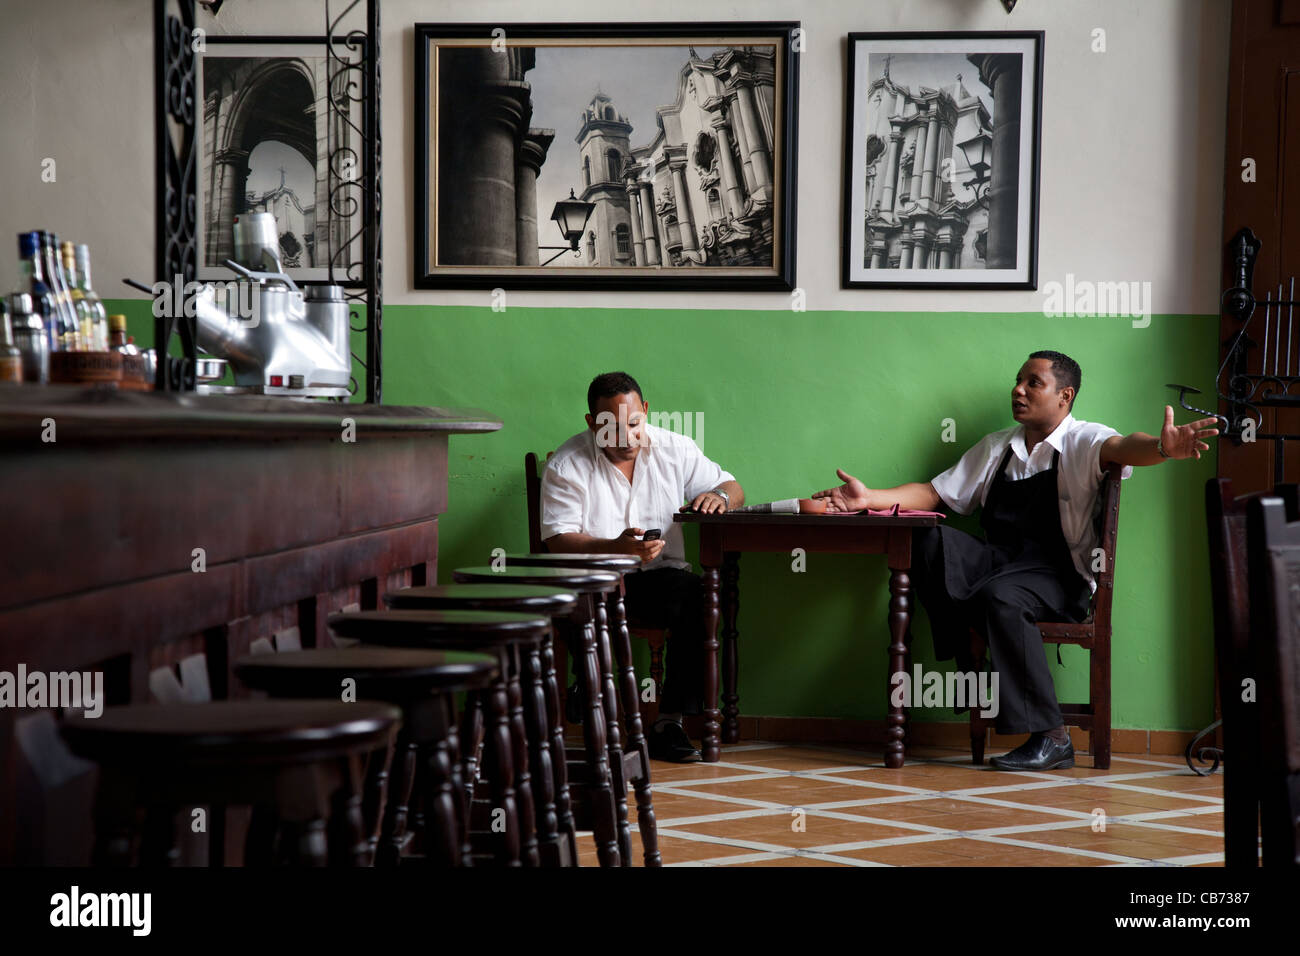 Waiters at conversation in the early afternoon, Havana (La Habana), Cuba - Stock Image